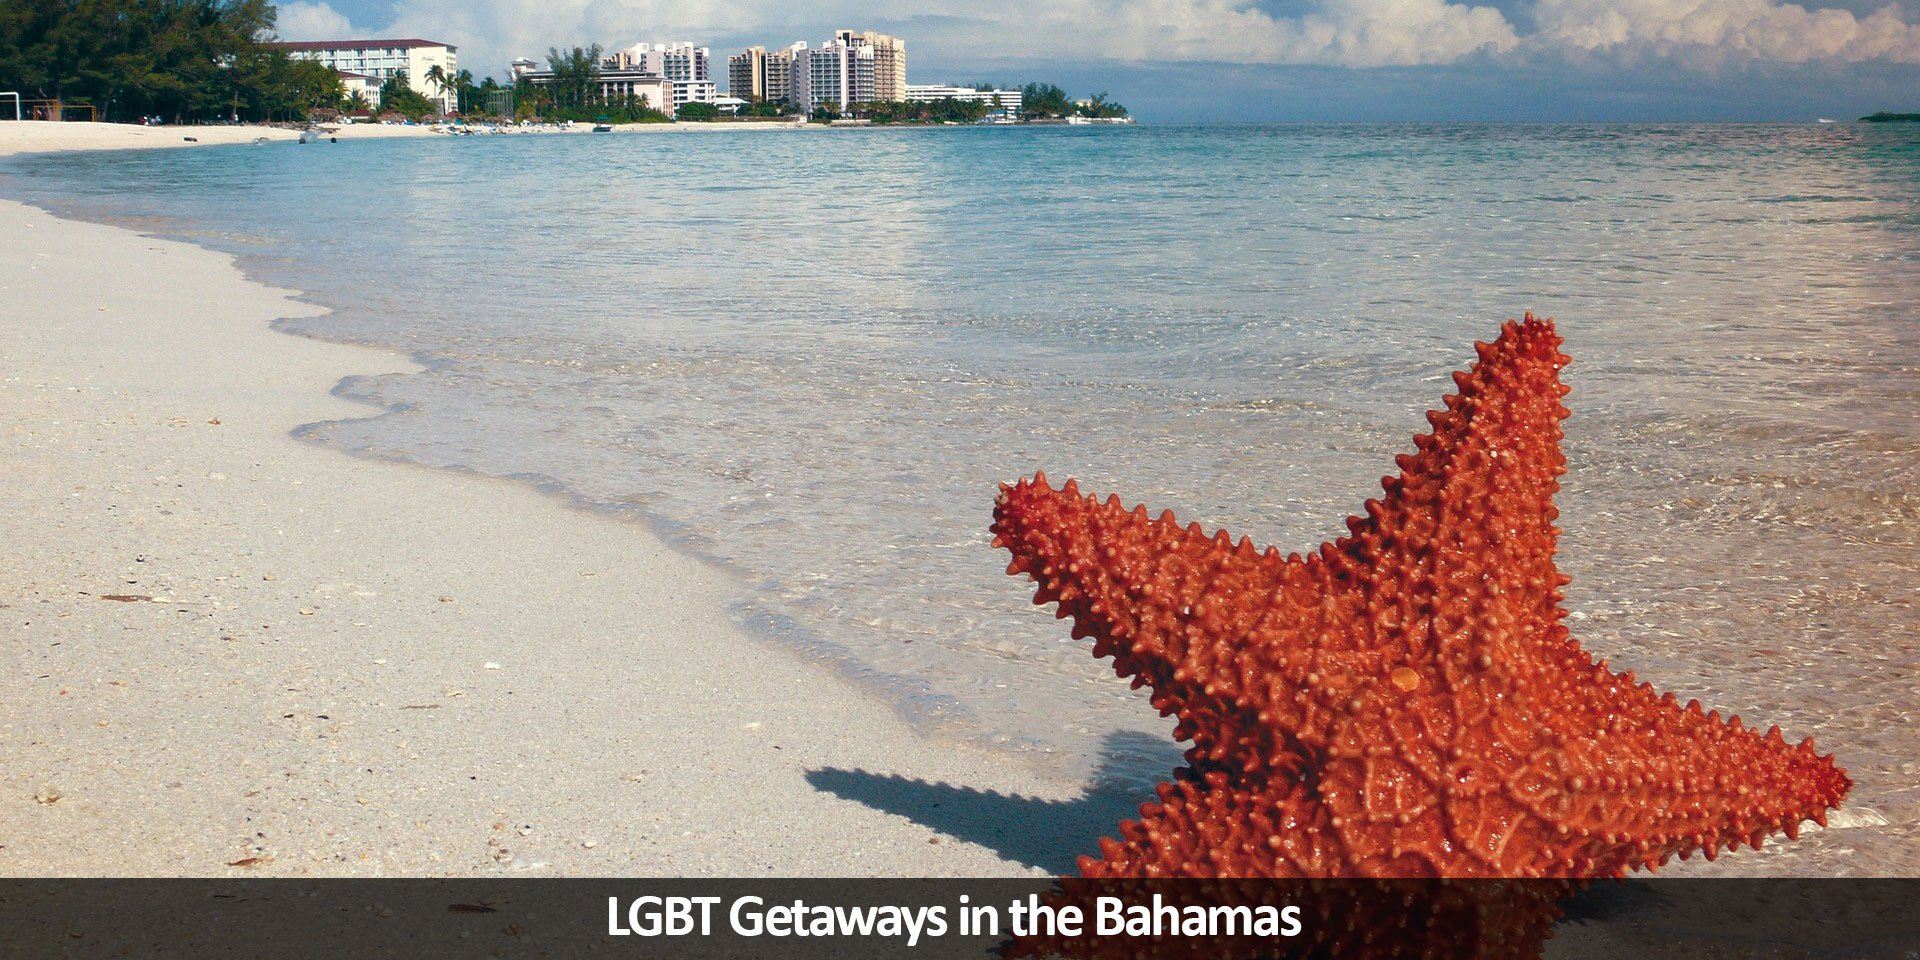 LGBT Getaways in the Bahamas - Windy City Travel